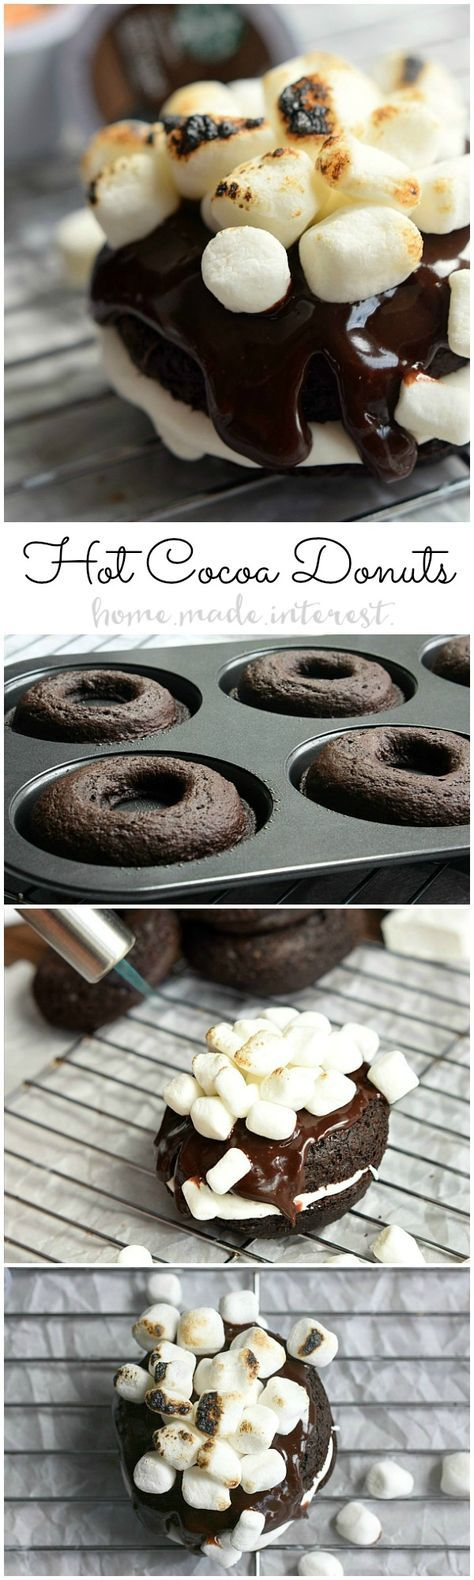 This Hot Cocoa Baked Donut recipe is the best baked doughnut recipe around! A fluffy chocolate cocoa donut filled with marshmallow frosting and topped with chocolate ganache and toasted marshmallows.